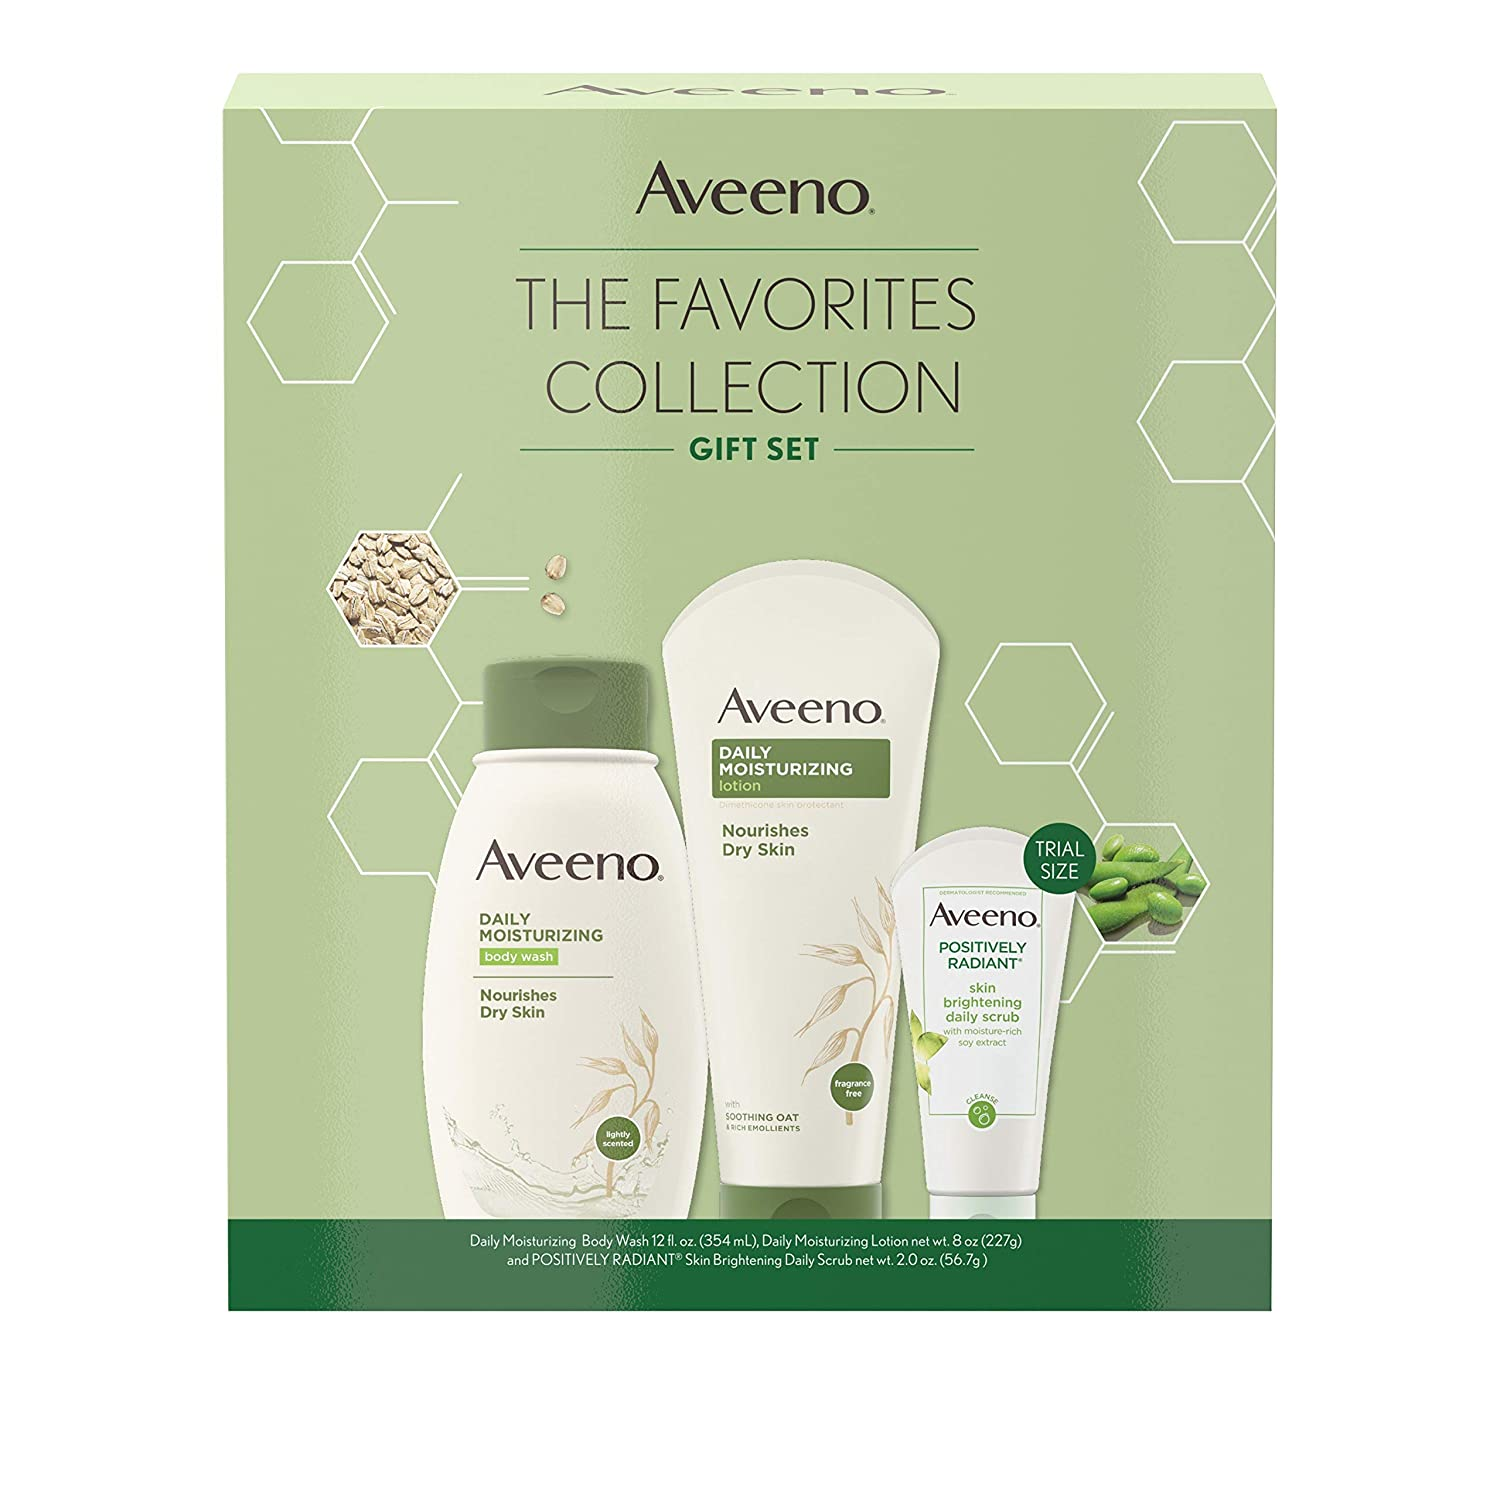 Aveeno The Favorites Collection Skincare Set with Daily Moisturizing Body Wash, Positively Radiant Brightening Daily Scrub, and Daily Moisturizing Lotion, Gift Set for Women, 3 items: Beauty